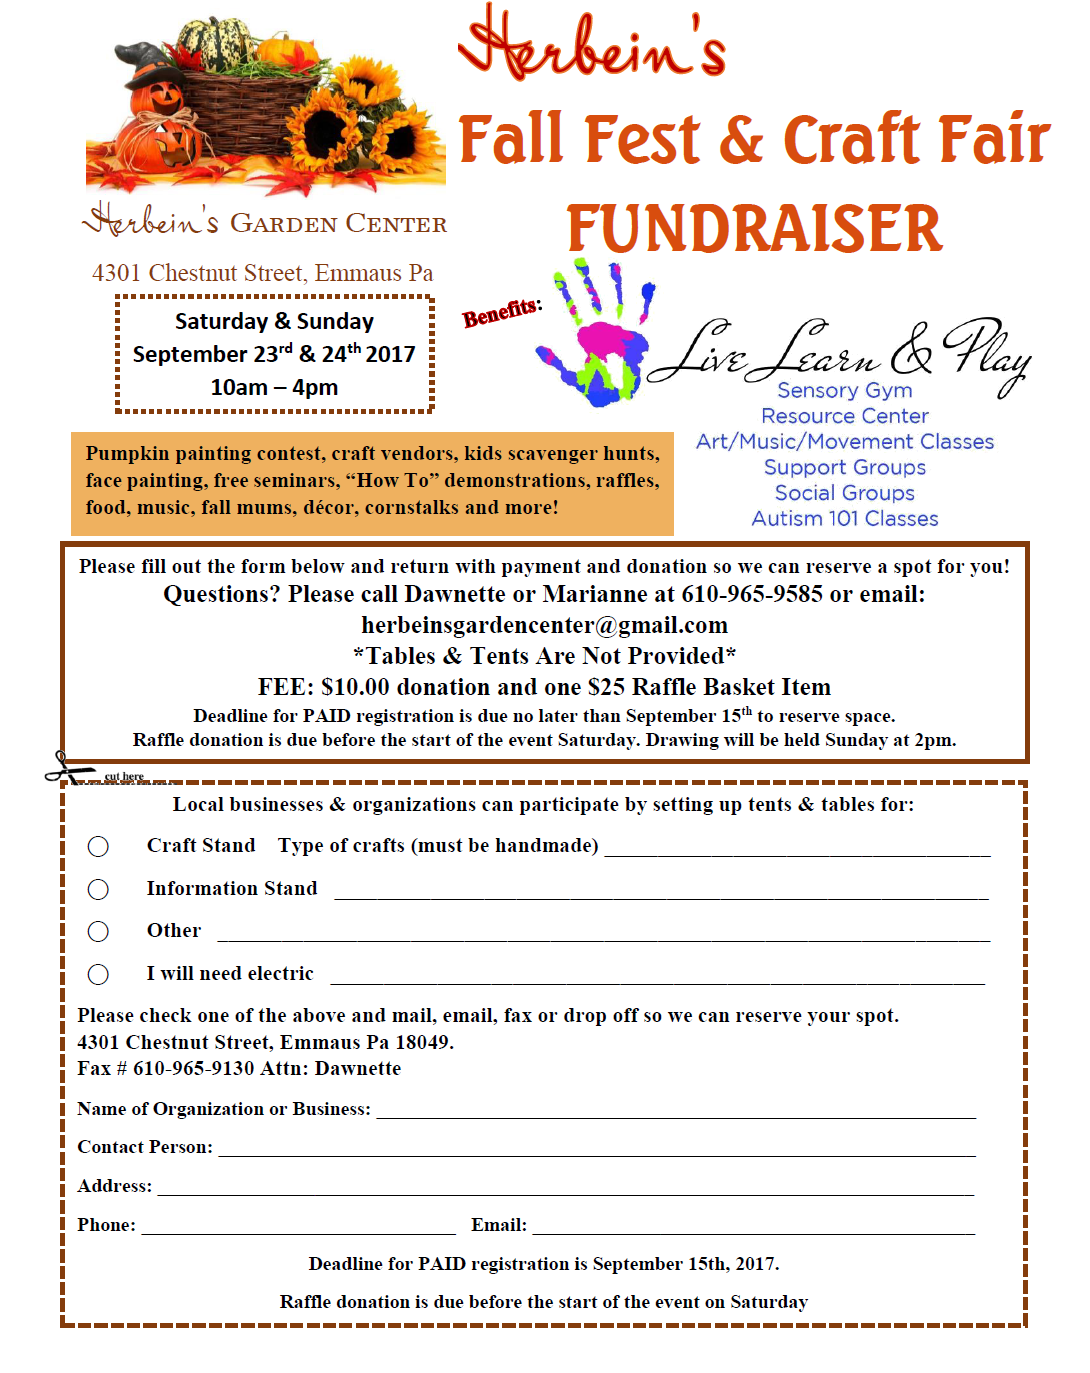 Herbein's Fall Fest Craft Fair Fundraiser Vendor Form 2017 September Events Live Learn & Play Emmaus Pa